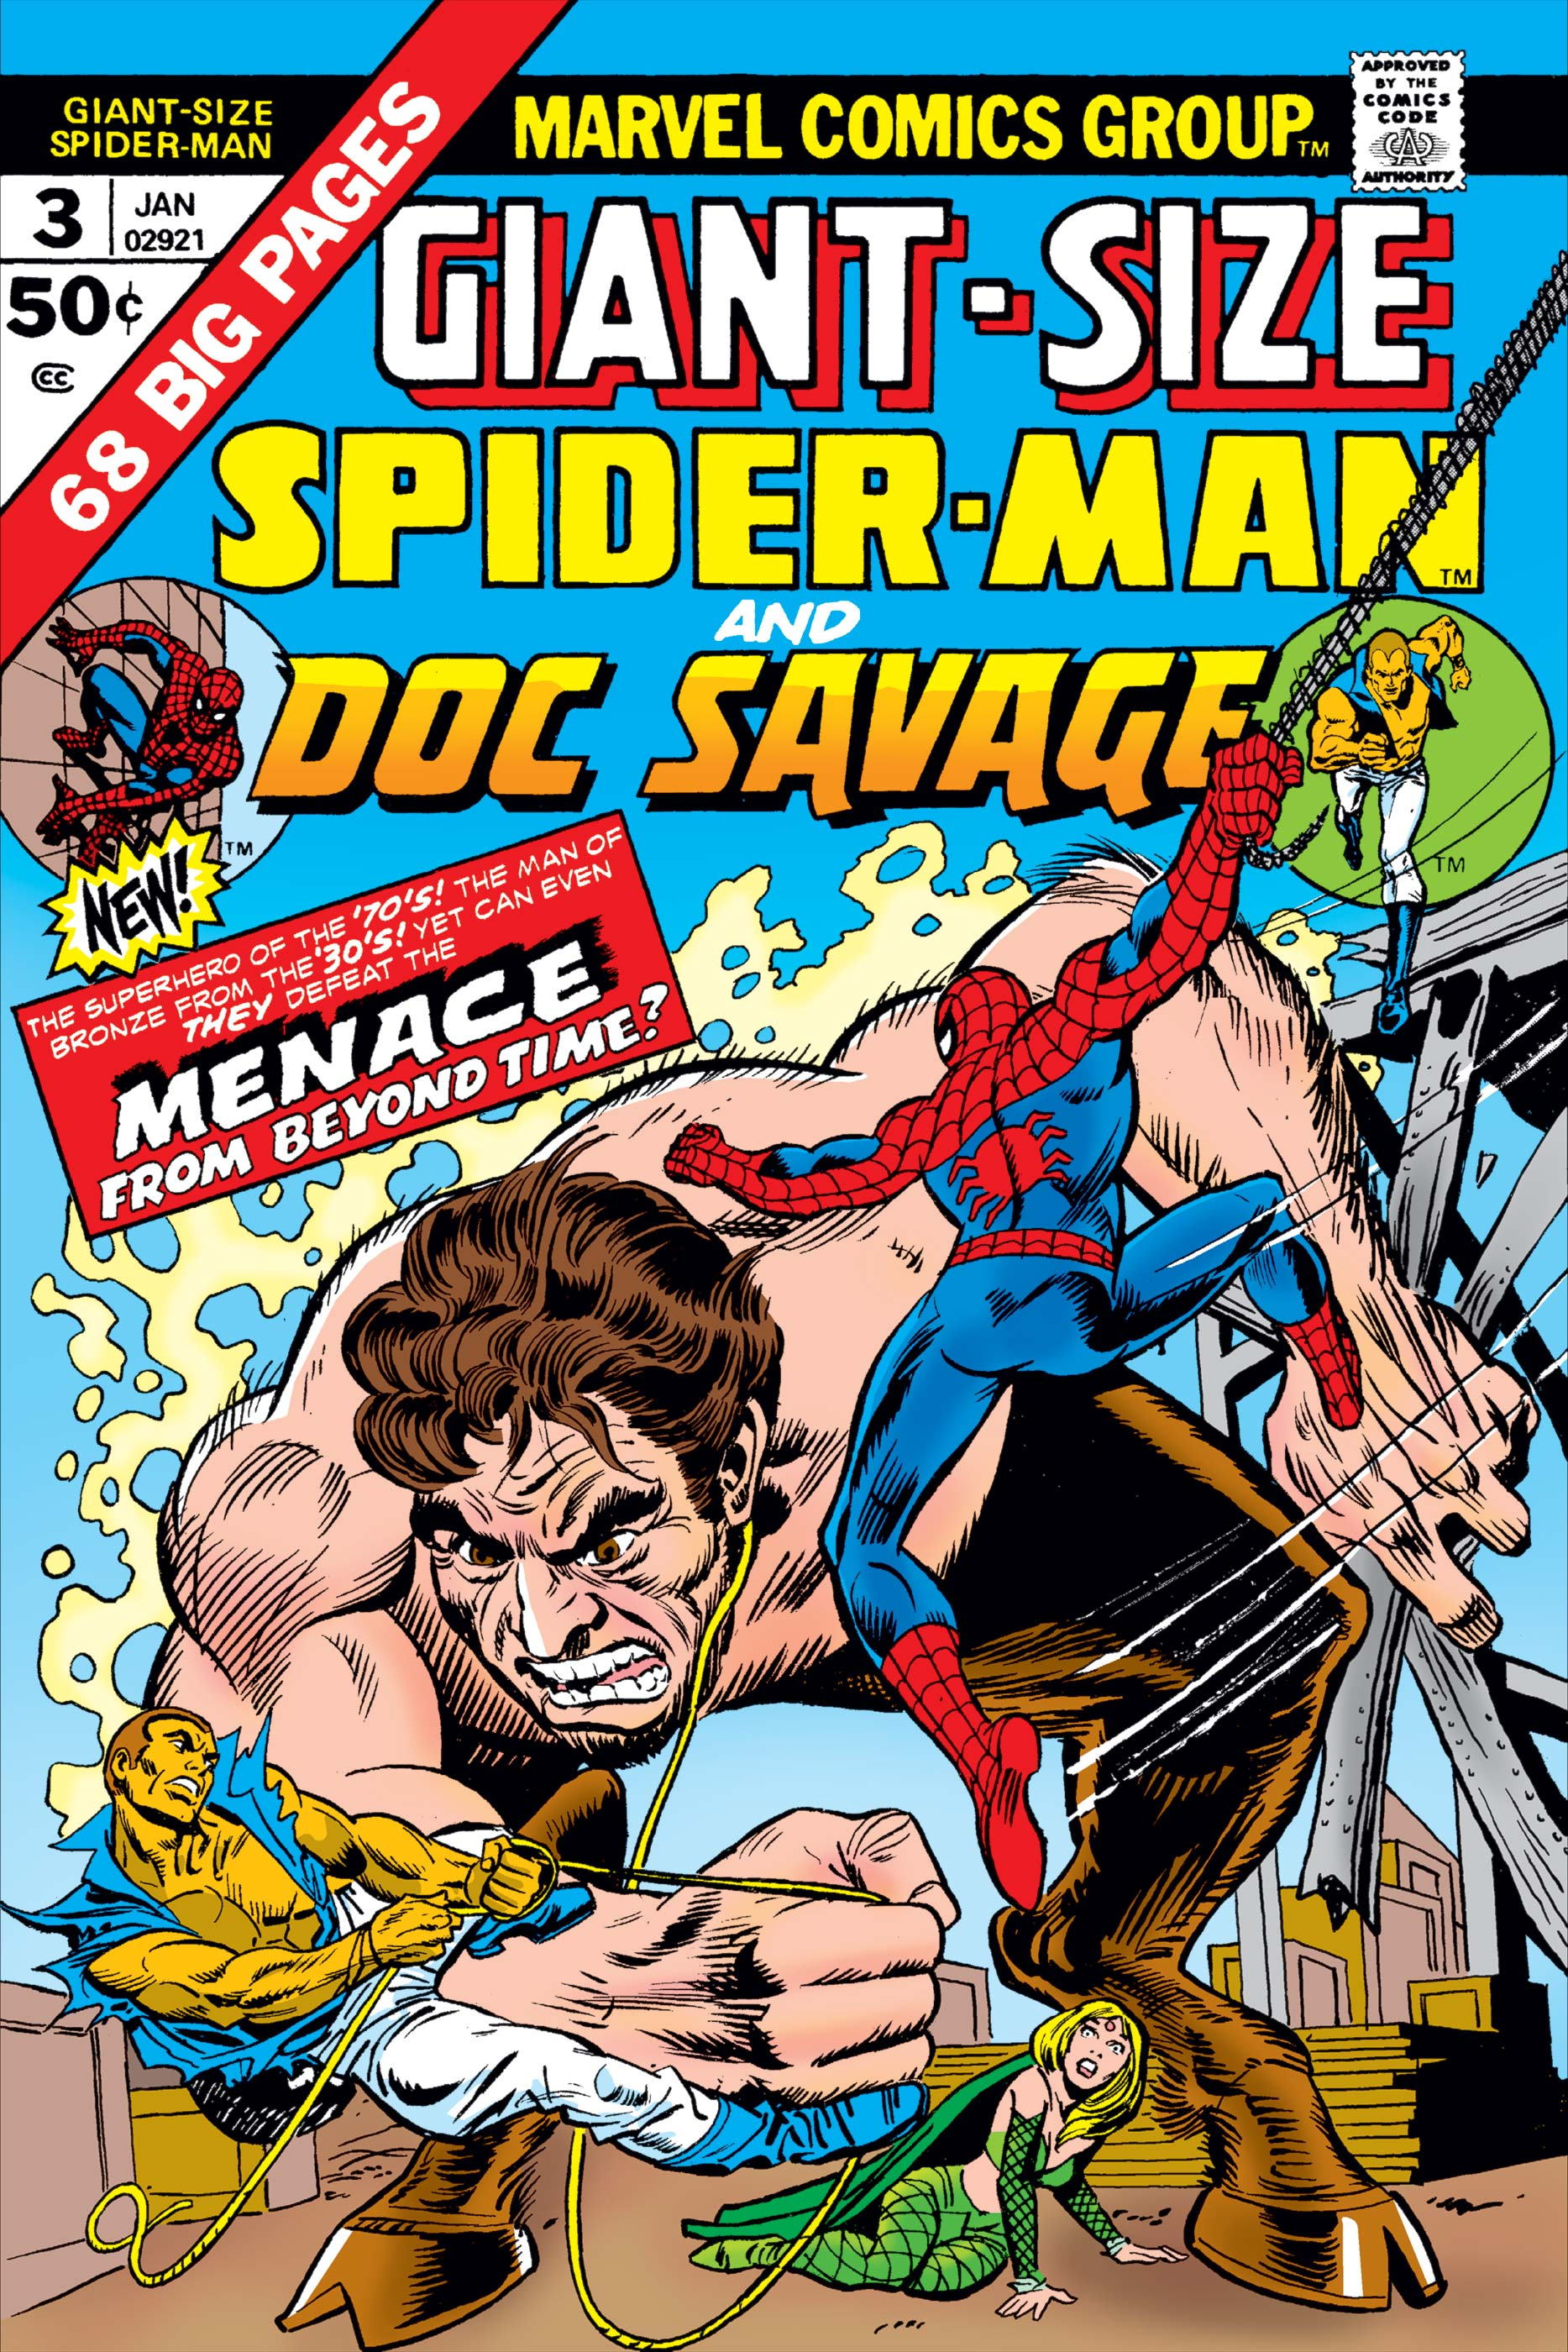 Giant-Size Spider-Man (1974) #3